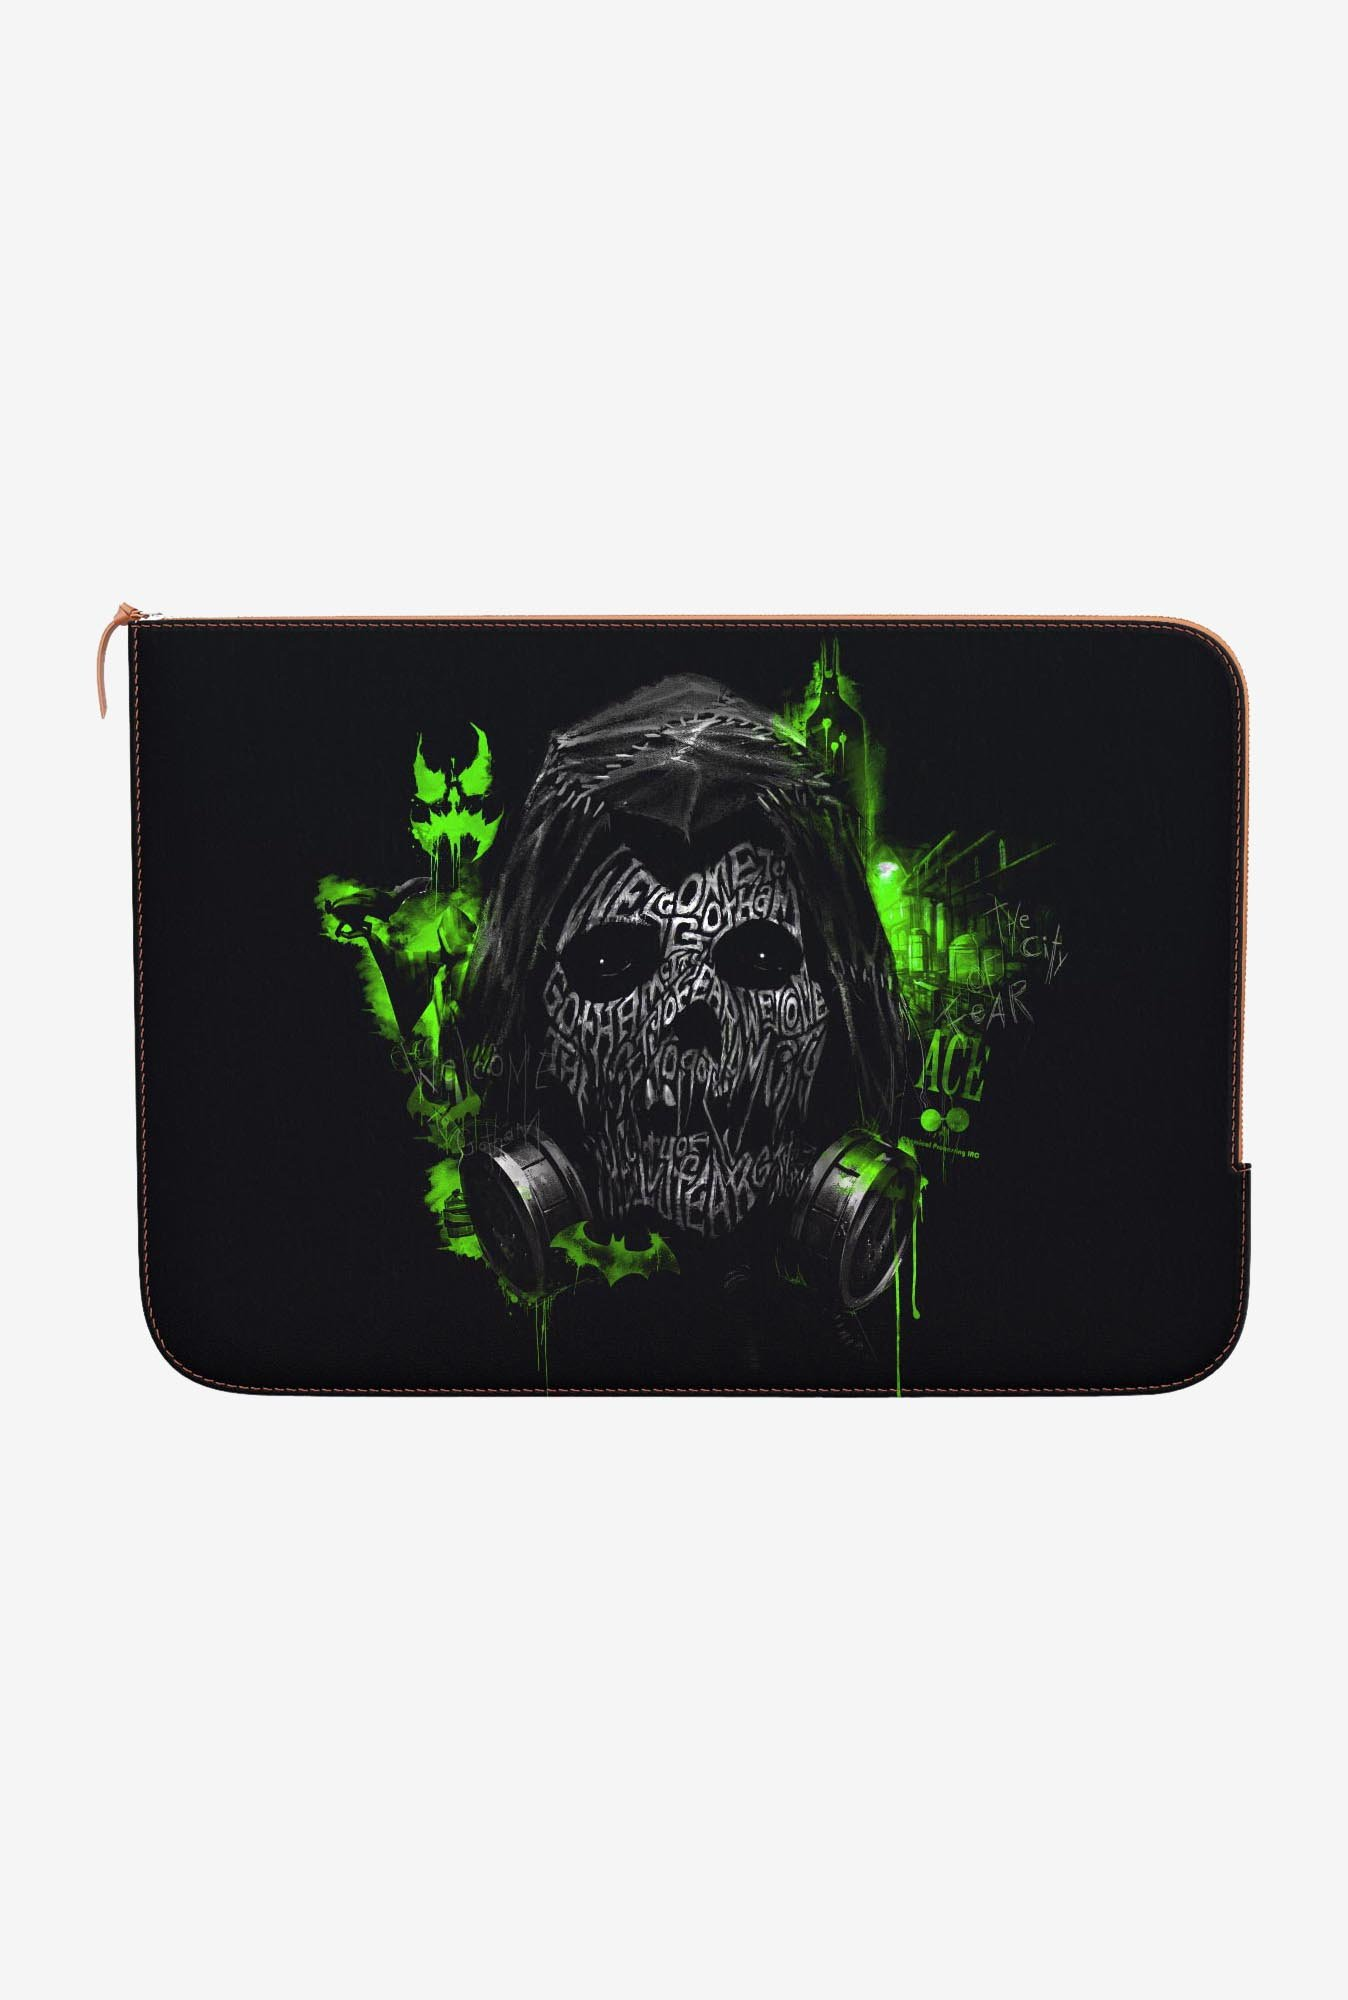 DailyObjects Scarecrow Green MacBook Air 11 Zippered Sleeve